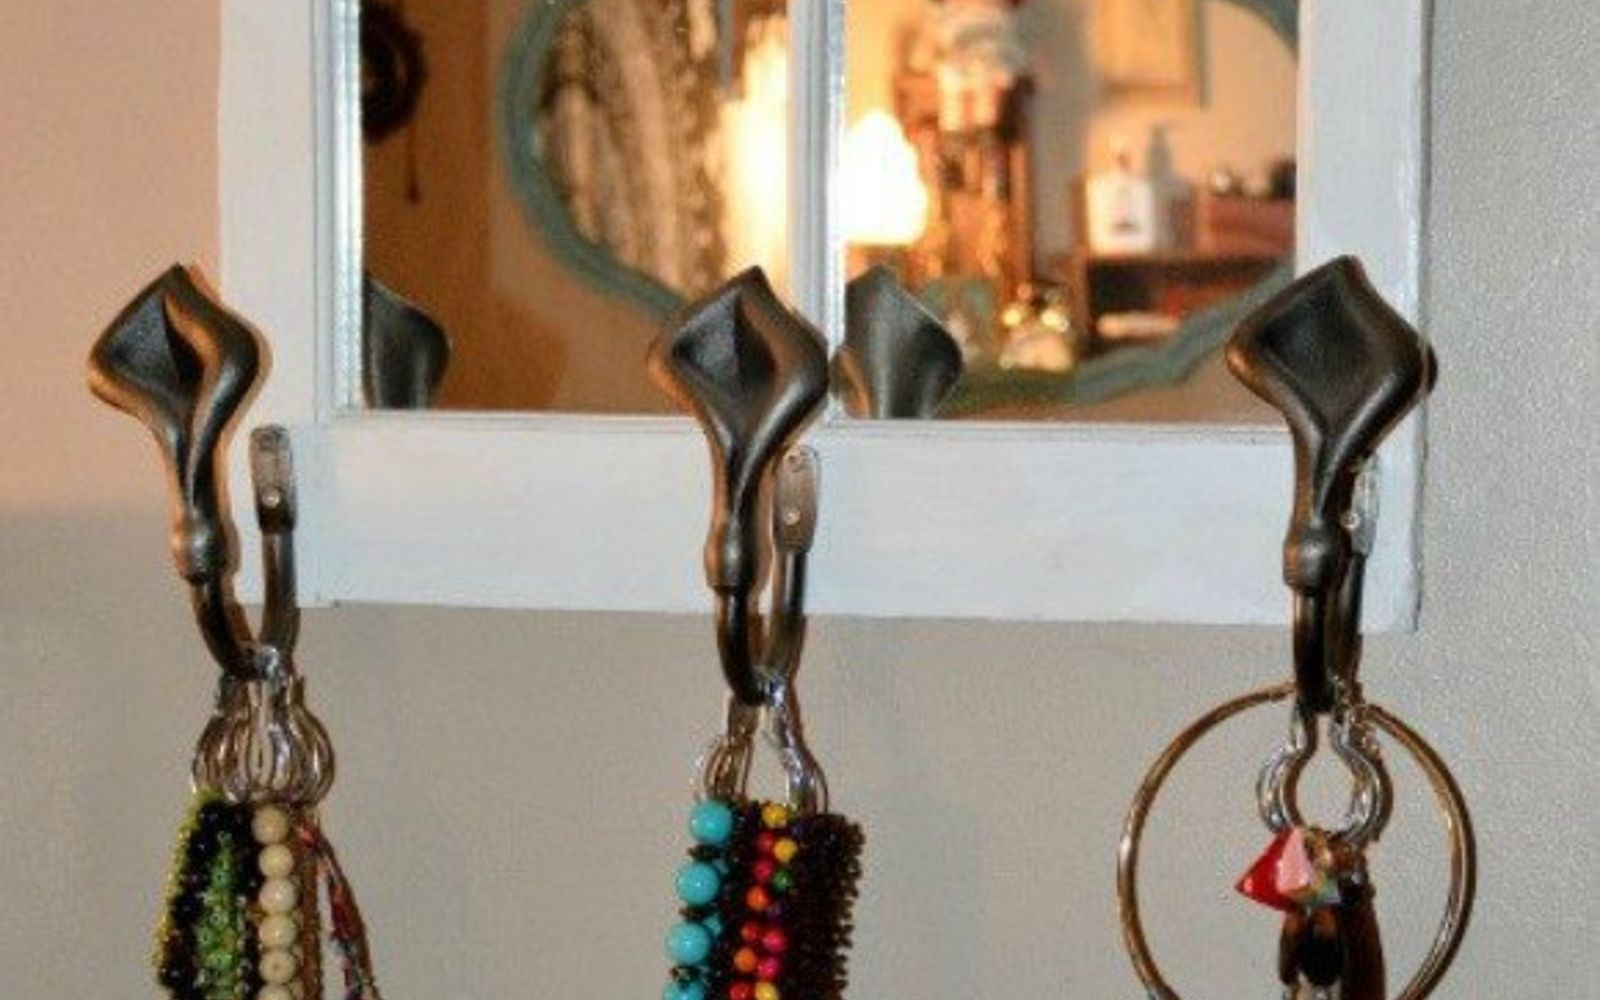 s 21 jewelry organizing ideas that are better than a jewelry box, organizing, This organizer with shower curtain hooks